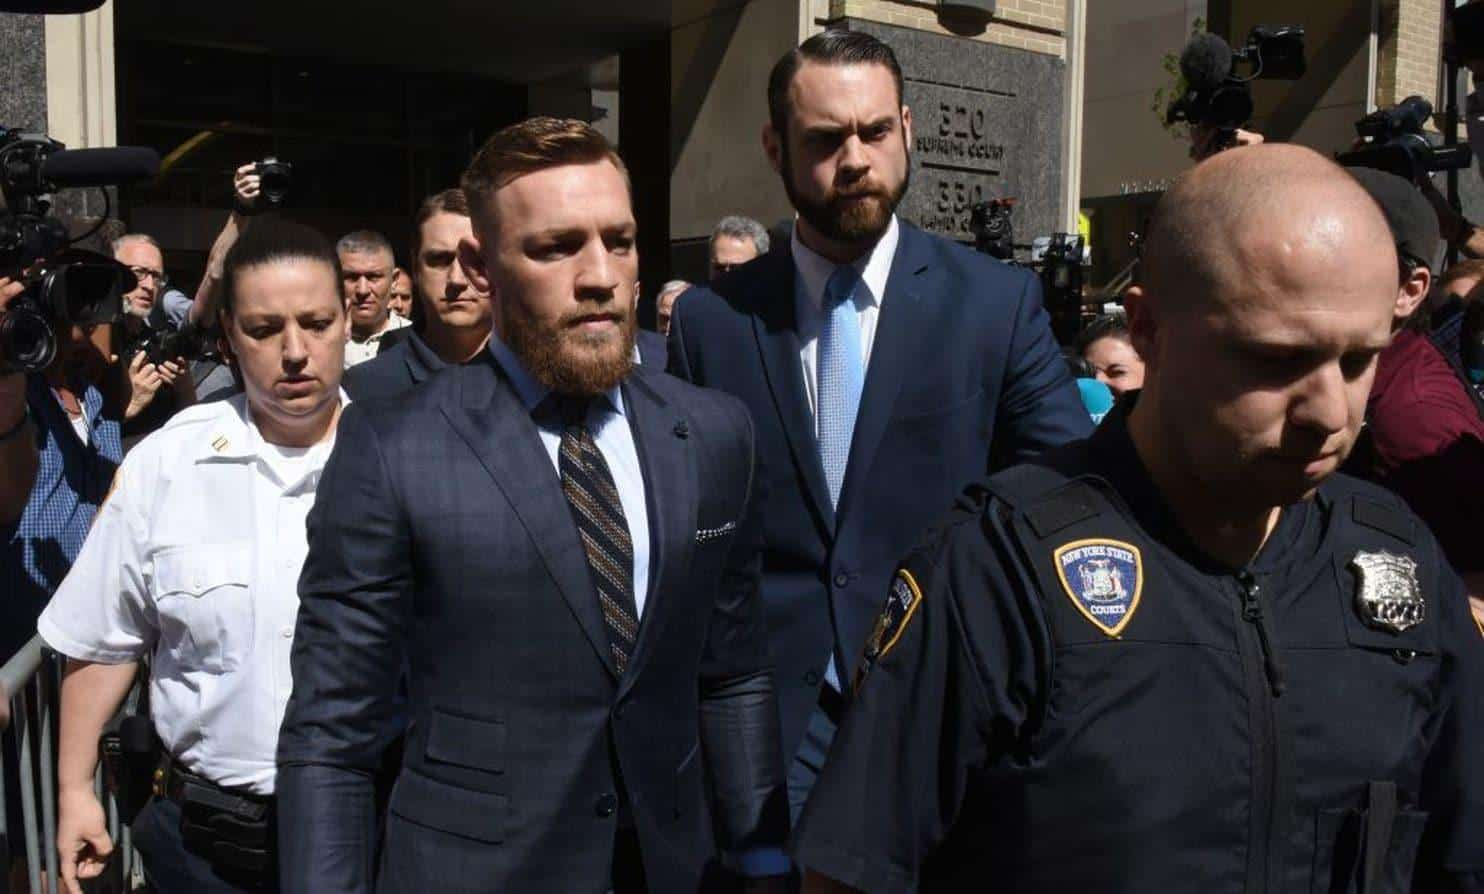 Conor McGregor sued by UFC fighter injured in bus attack